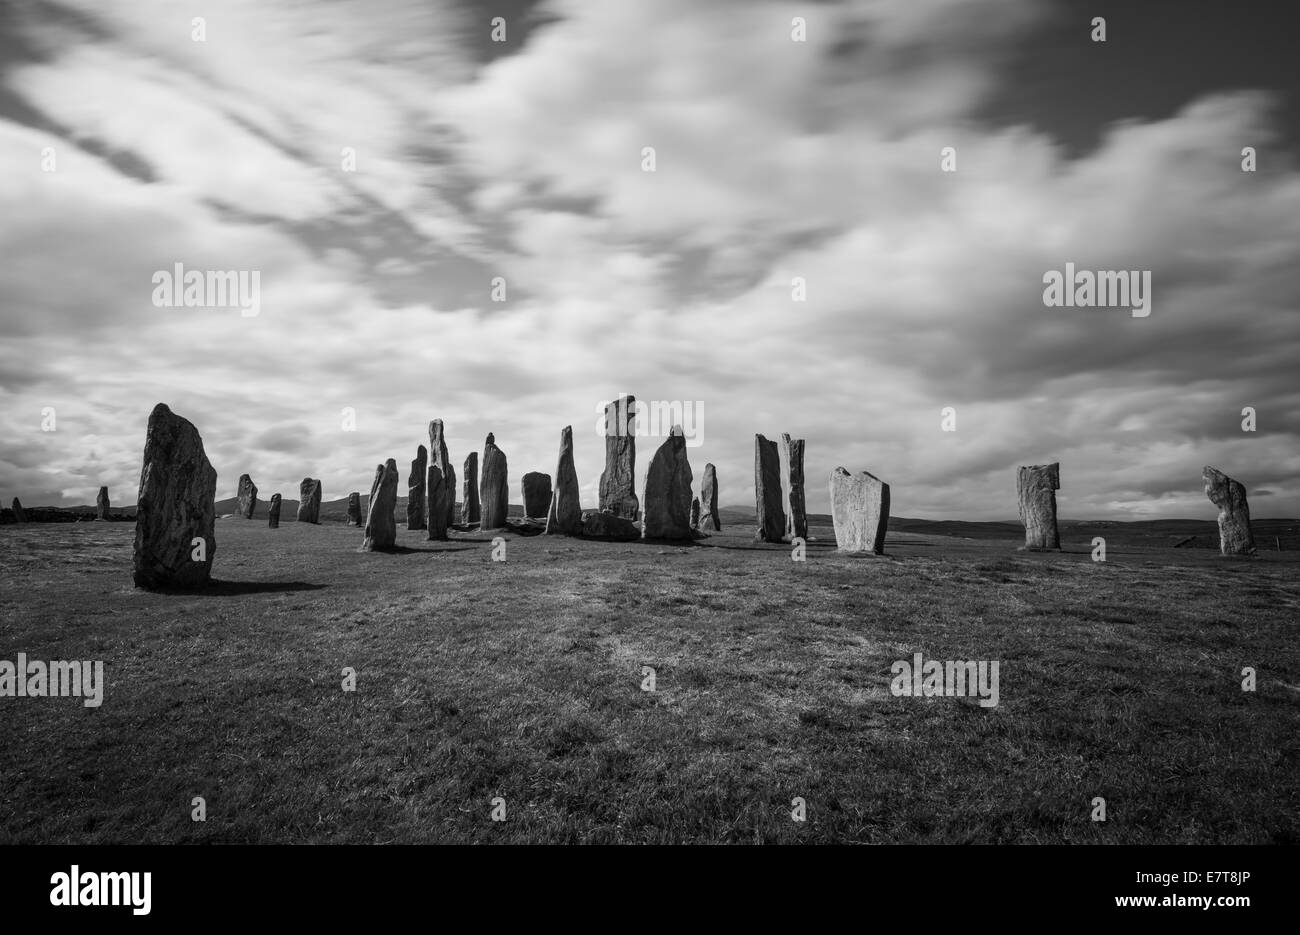 Standing stones at Callanish, Isle of Lewis, Outer Hebrides, Scotland - Stock Image